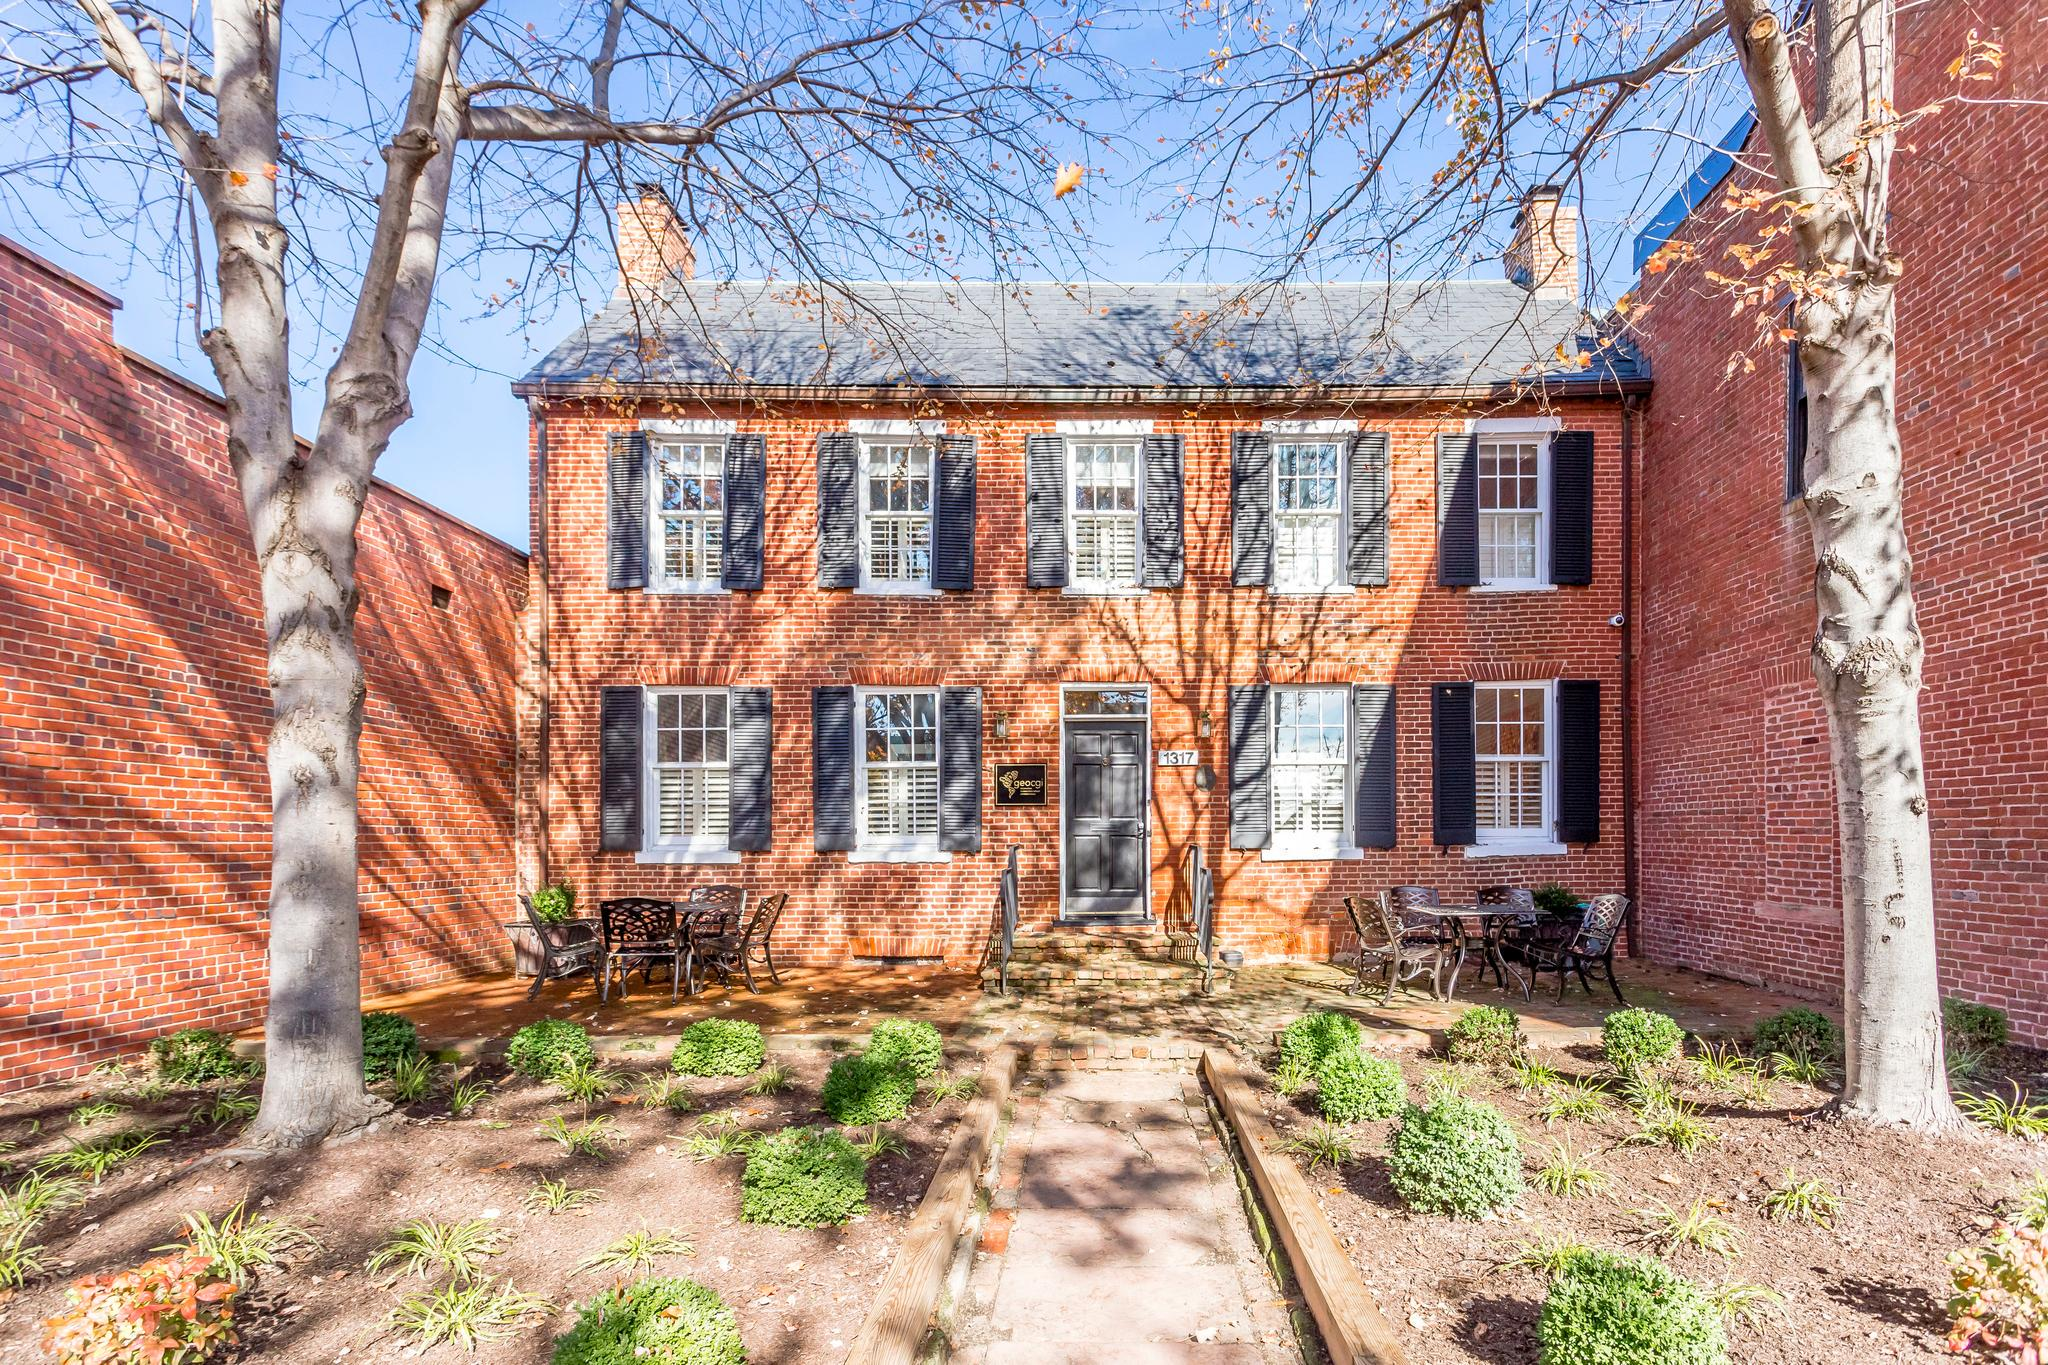 Commercial for Sale at 1317 King Street 1317 King Street Alexandria, Virginia 22314 United States